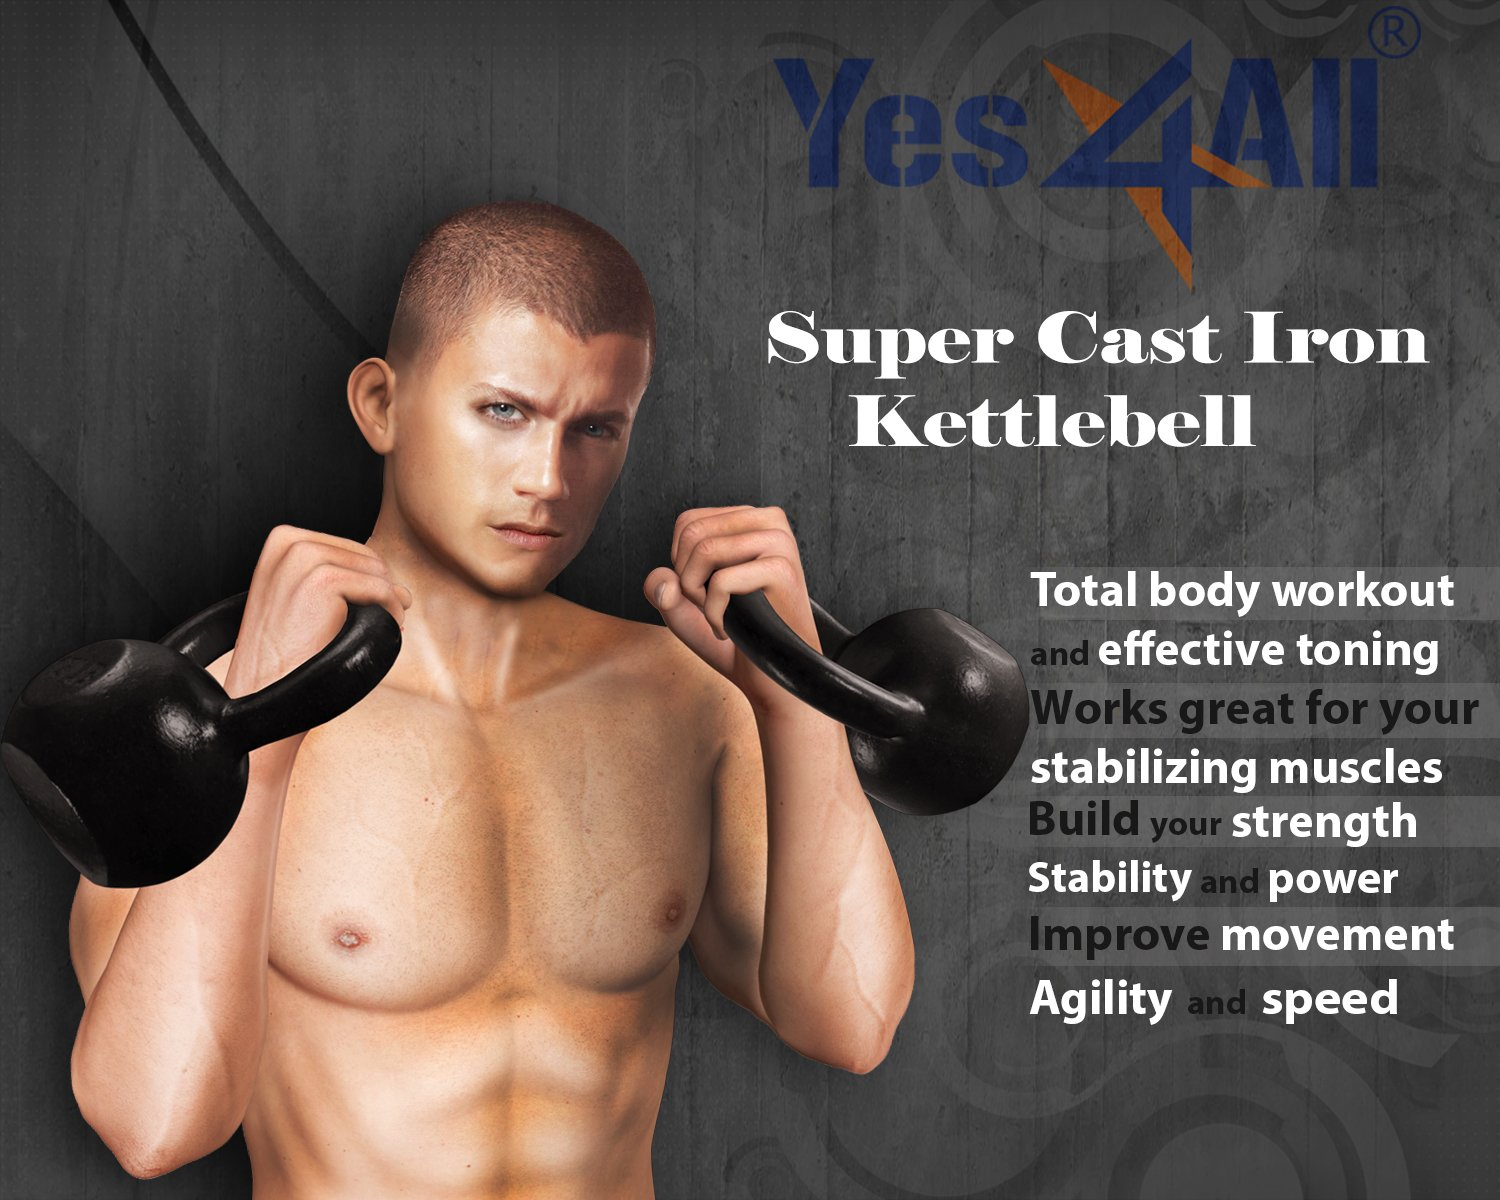 Yes4All Solid Cast Iron Kettlebell 5, 10, 15, 20, 25, 30, 35, 40, 45, 50, 55, 60 lb, Classic Black, 15 lb